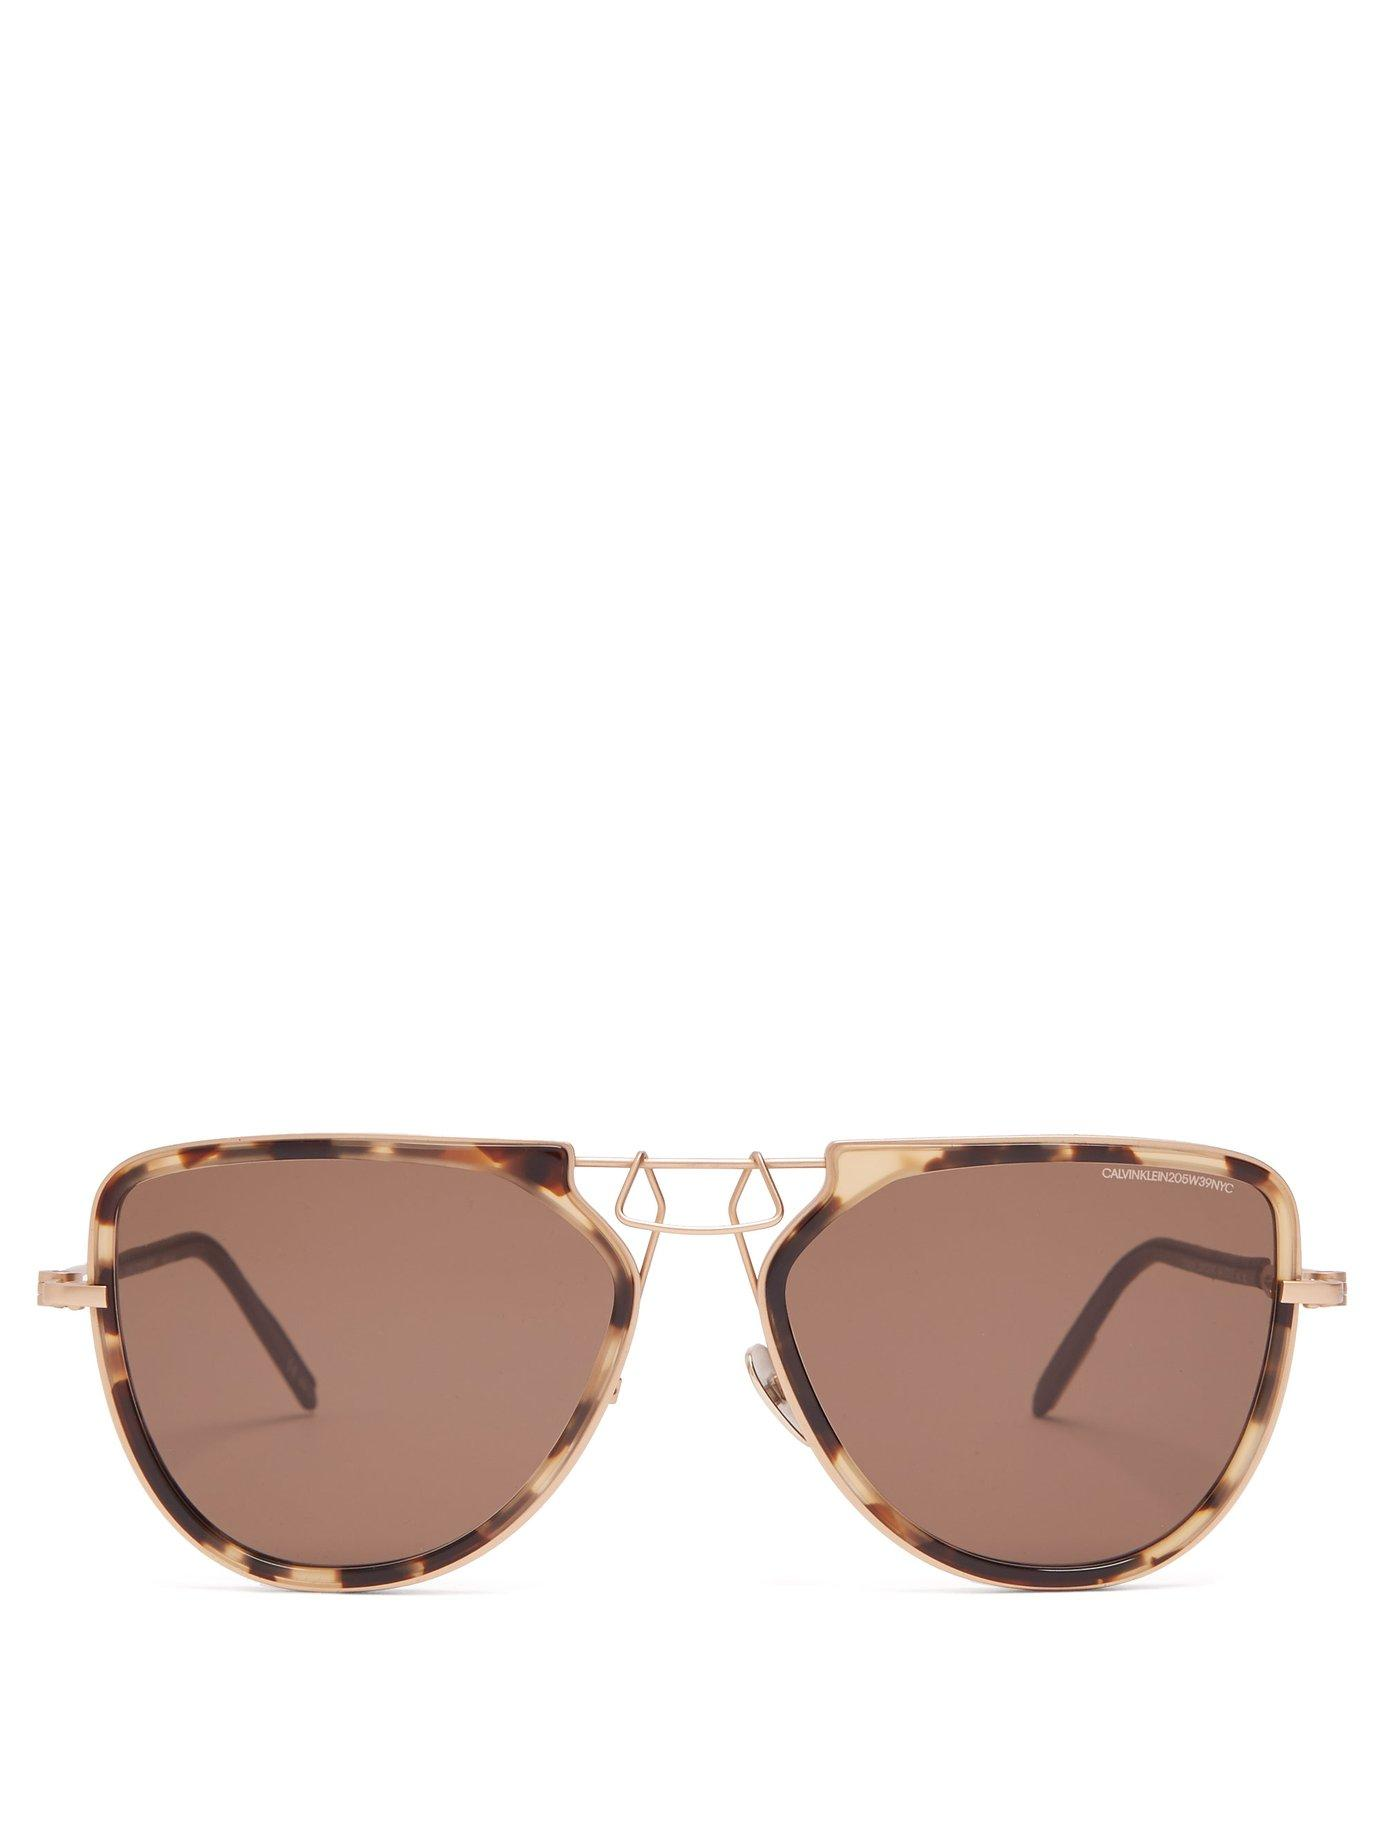 571533ecf98 Lyst - CALVIN KLEIN 205W39NYC Square Frame Metal Sunglasses in Brown ...